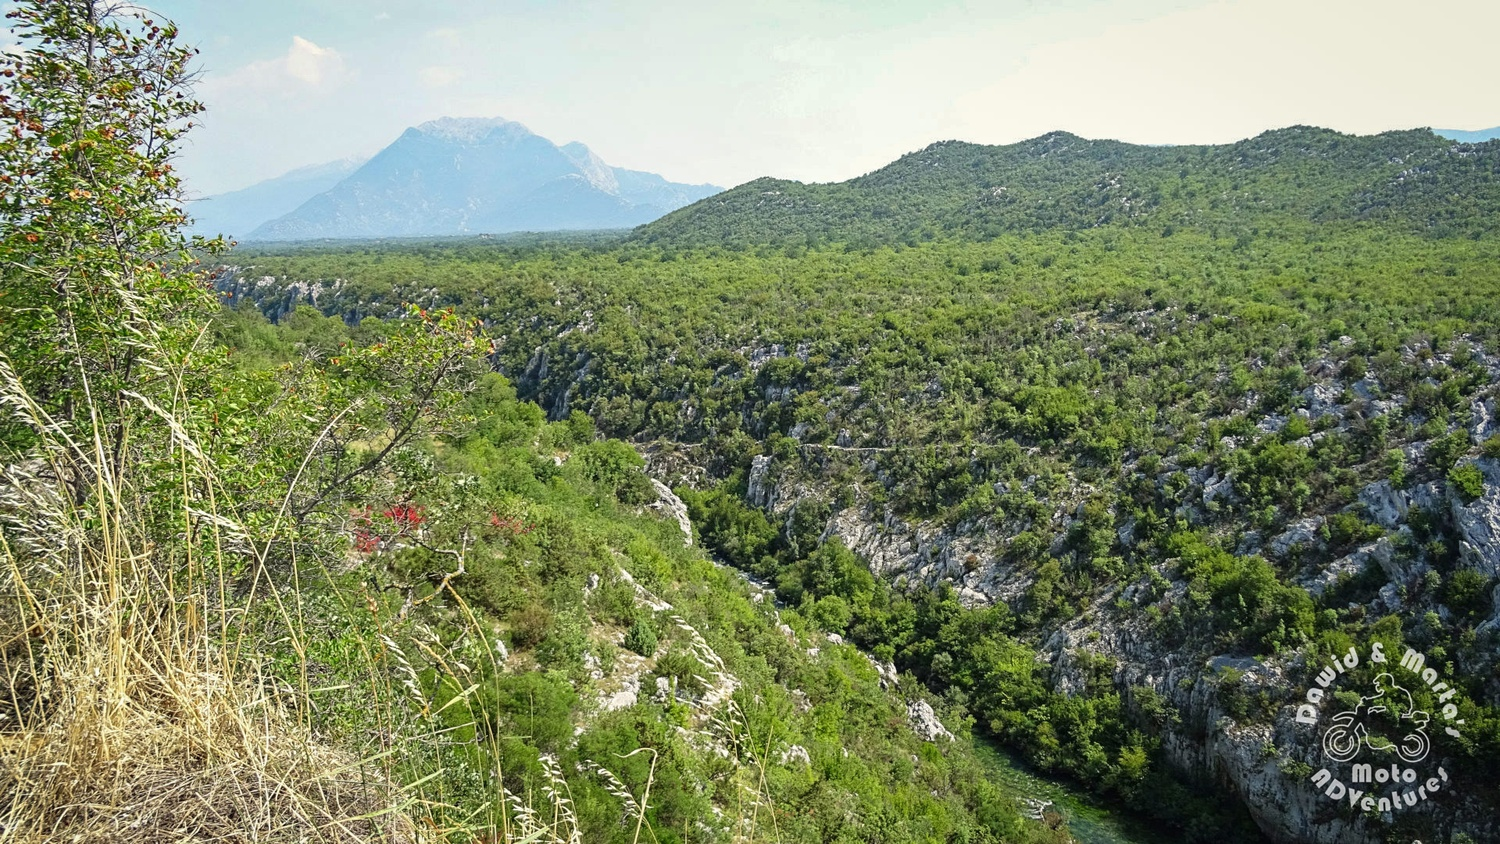 The Cetina River canyon